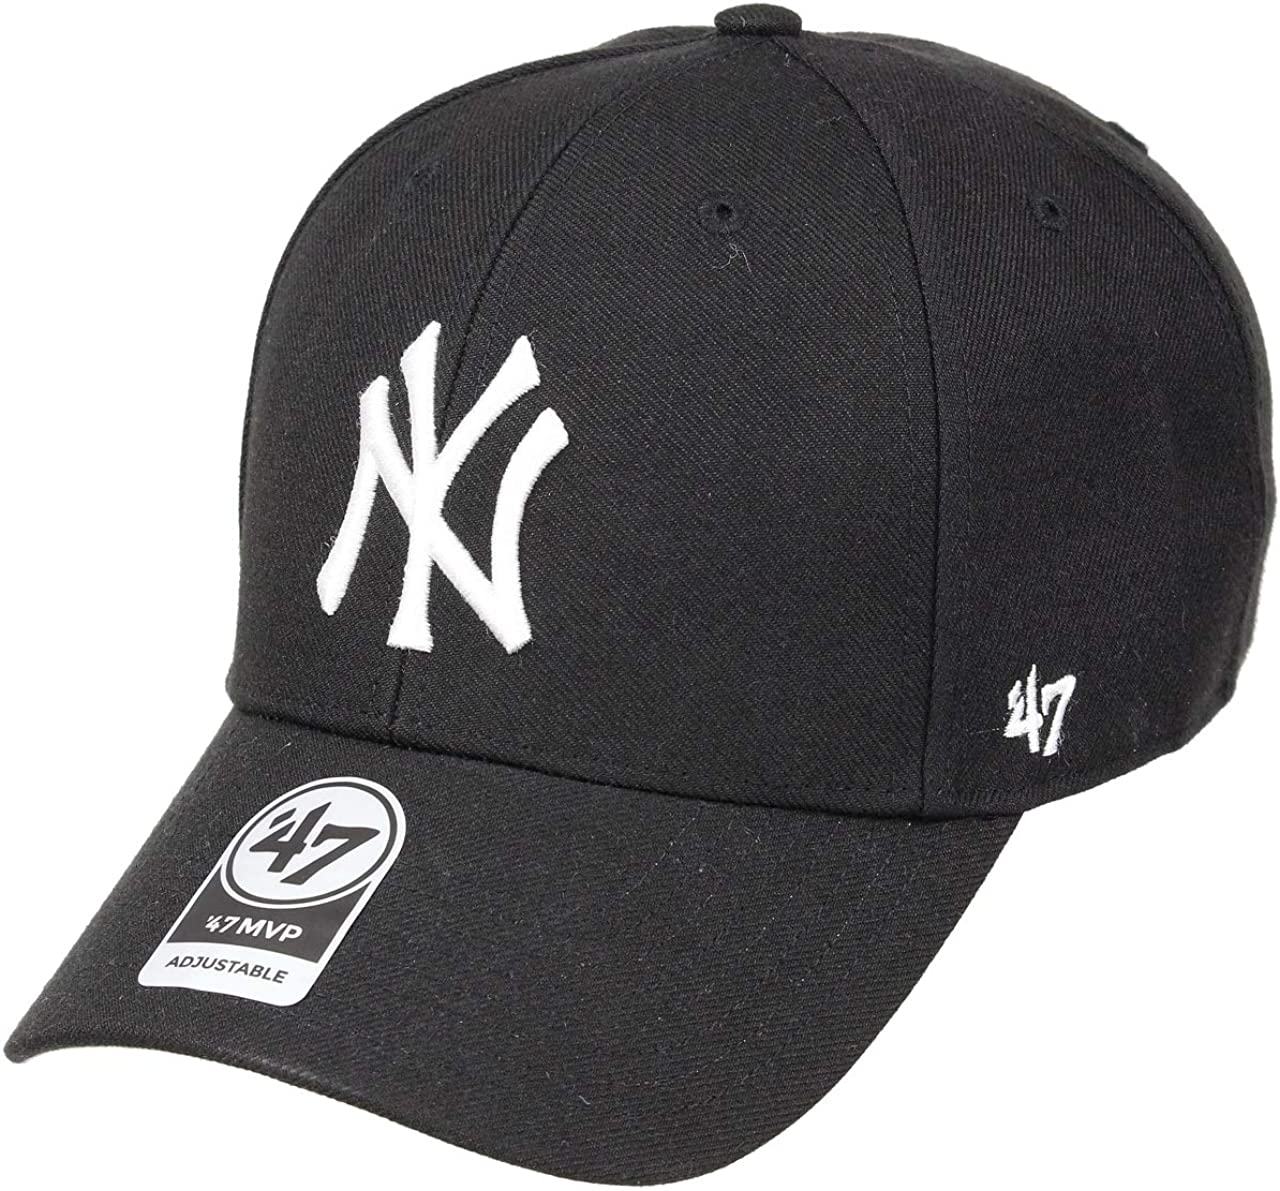 '47 25% OFF NBA Clean Up Hat Size One Adjustable Opening large release sale